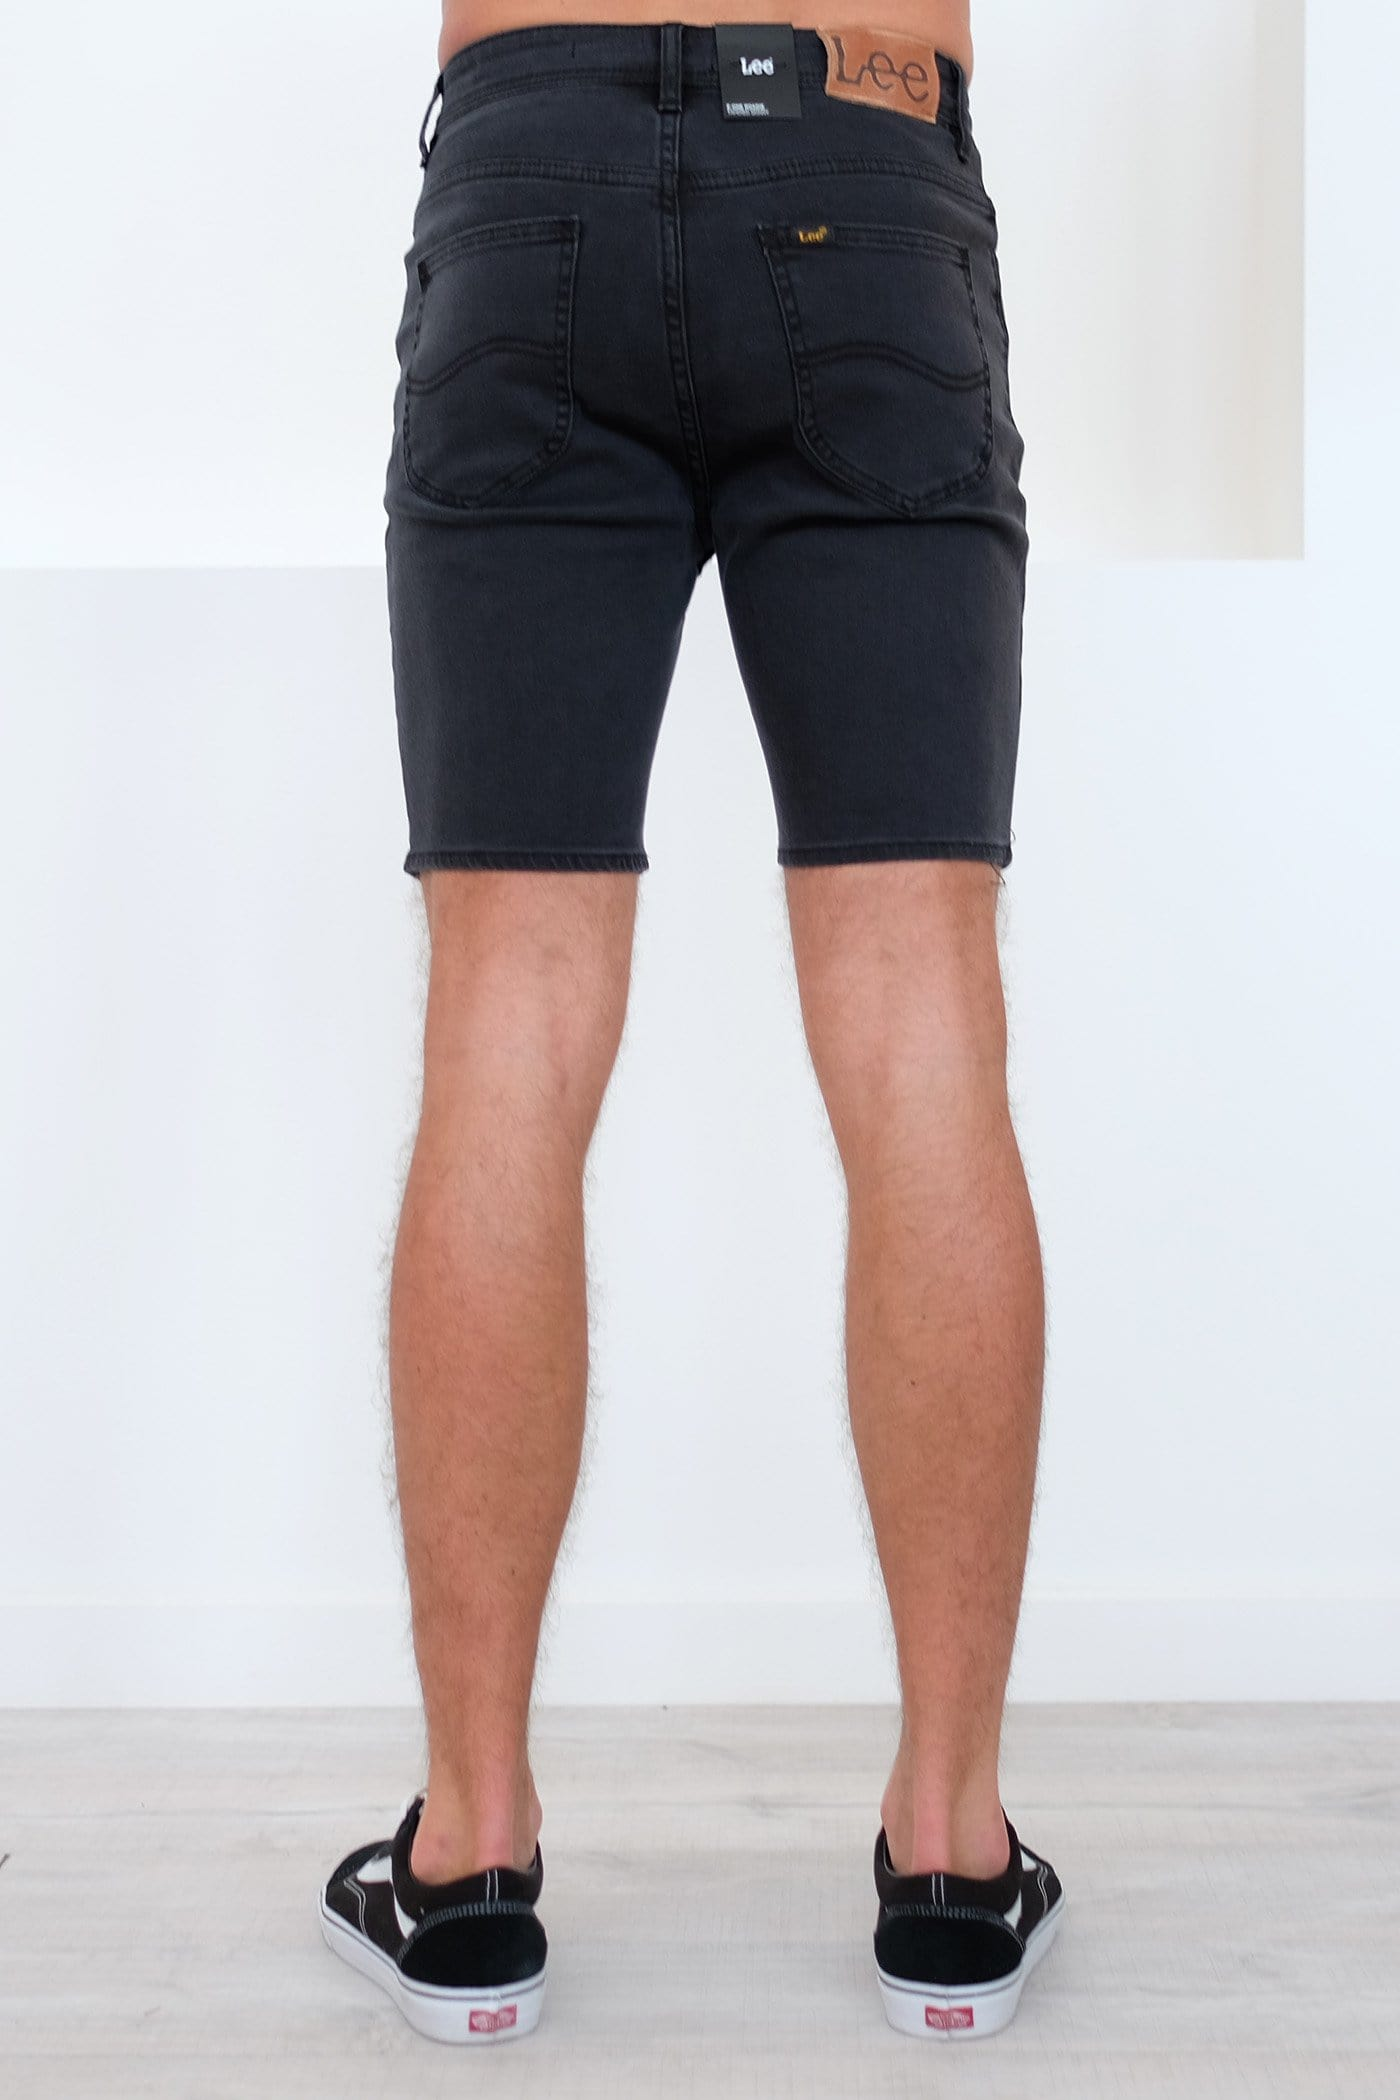 Z-One Roadie Short Lunar Black